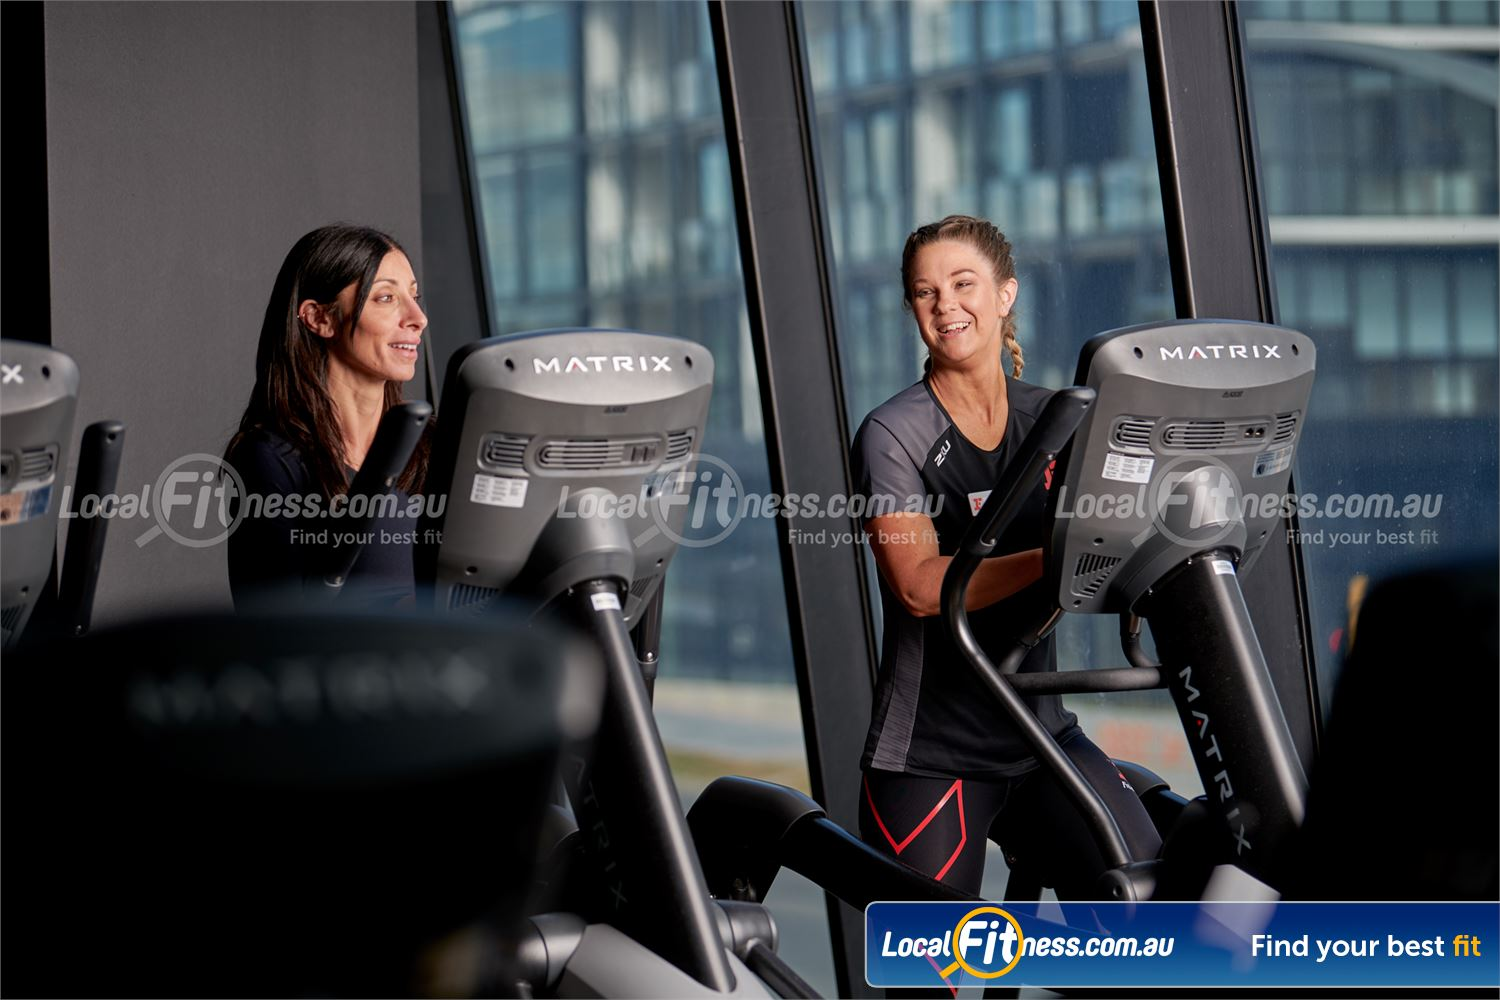 Fitness First Macquarie Ryde State of the art cardio includes treadmills, cross trainers, rowers and more.